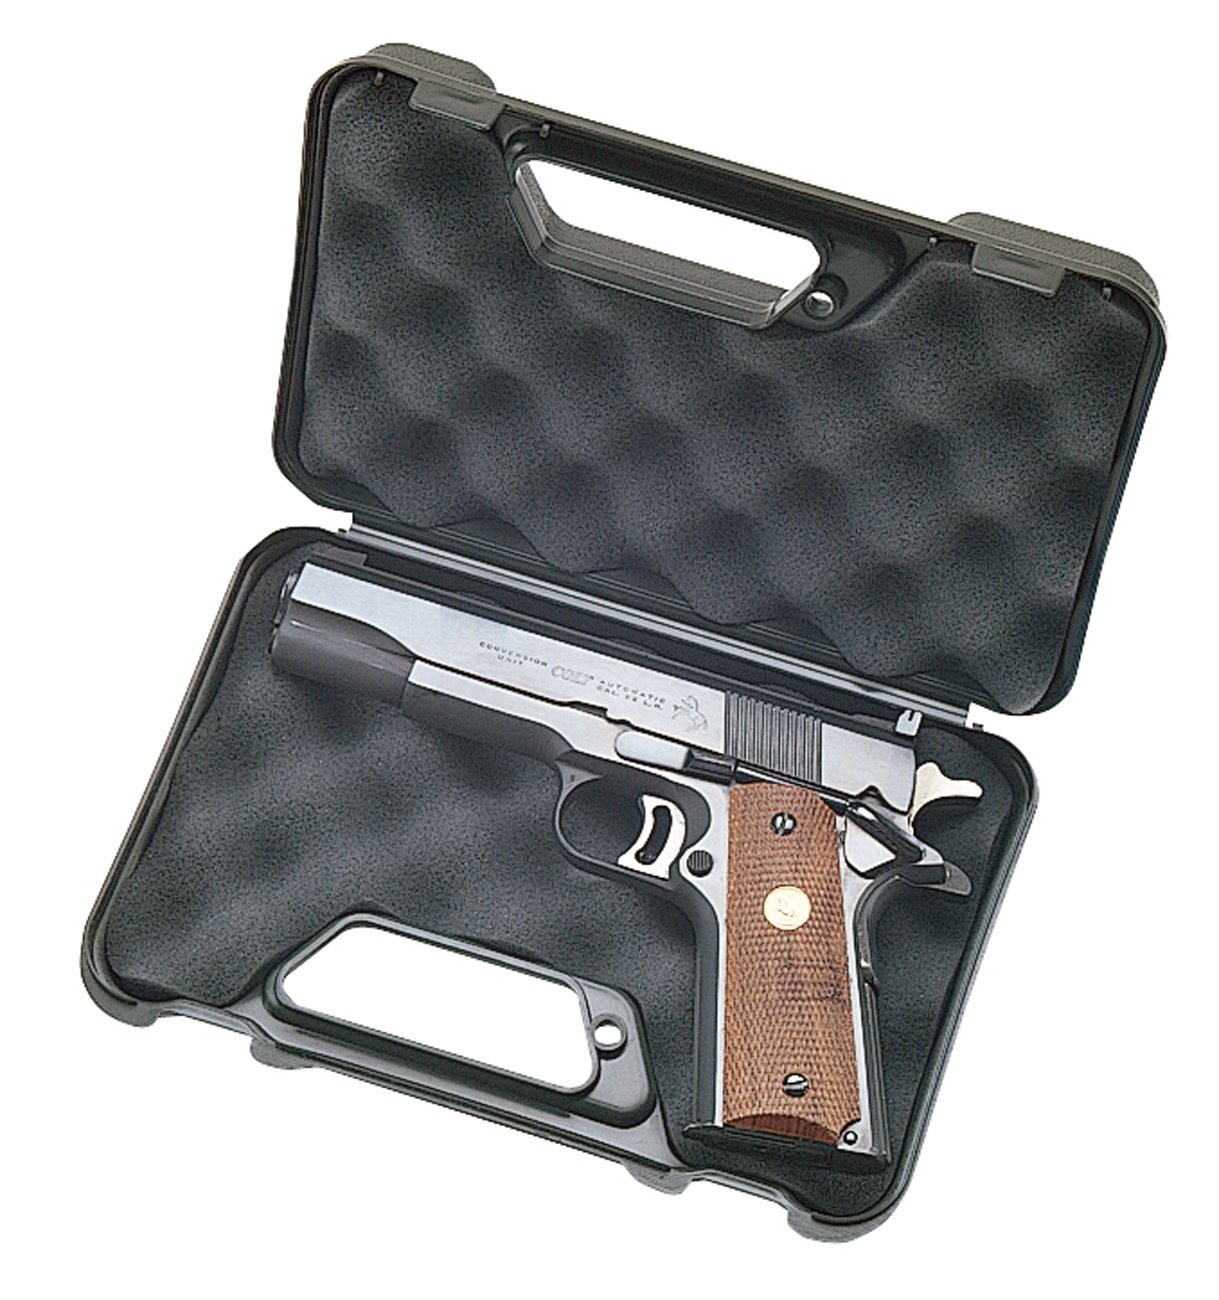 MTM Pocket Pistol Case (Black) 803-40 0898-0083